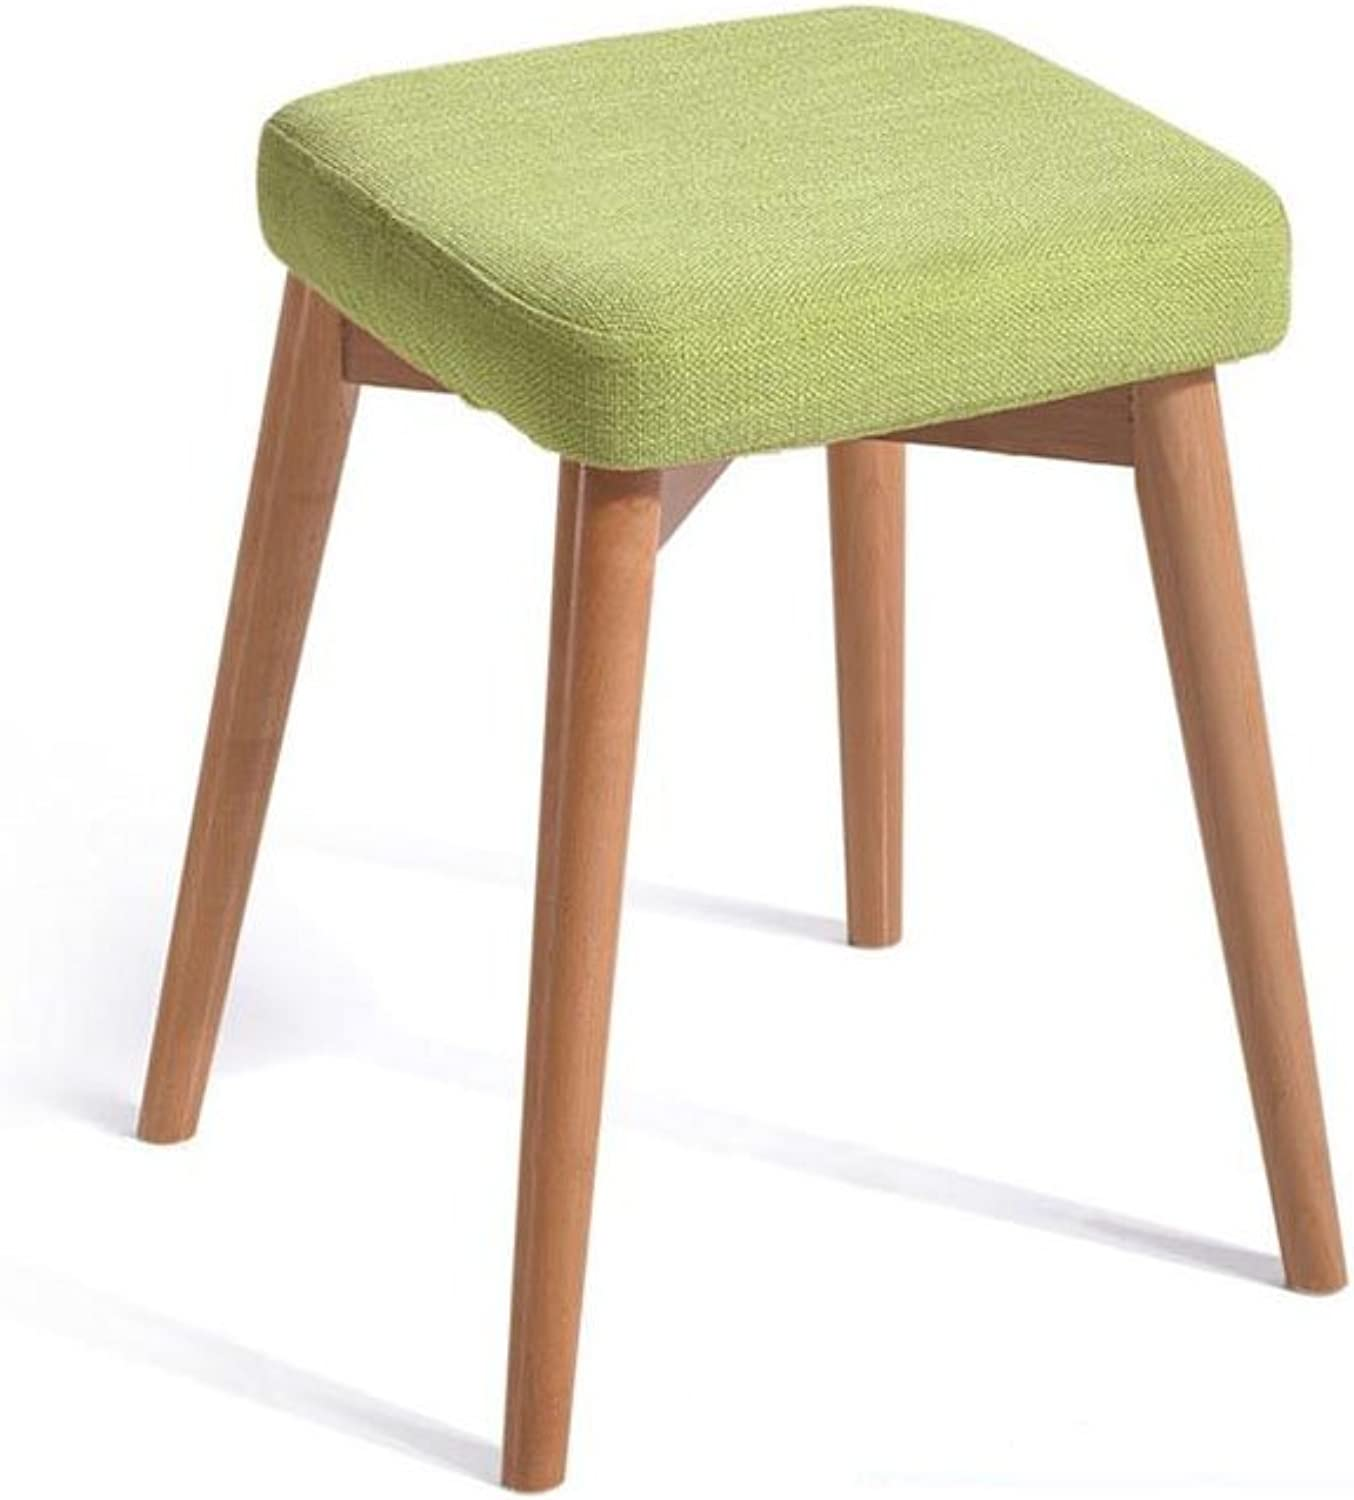 CJC Wooden Stool Household Removable seat Cover Solid Wood Can be Stacked Home Office Furniture Kitchen (color   1)